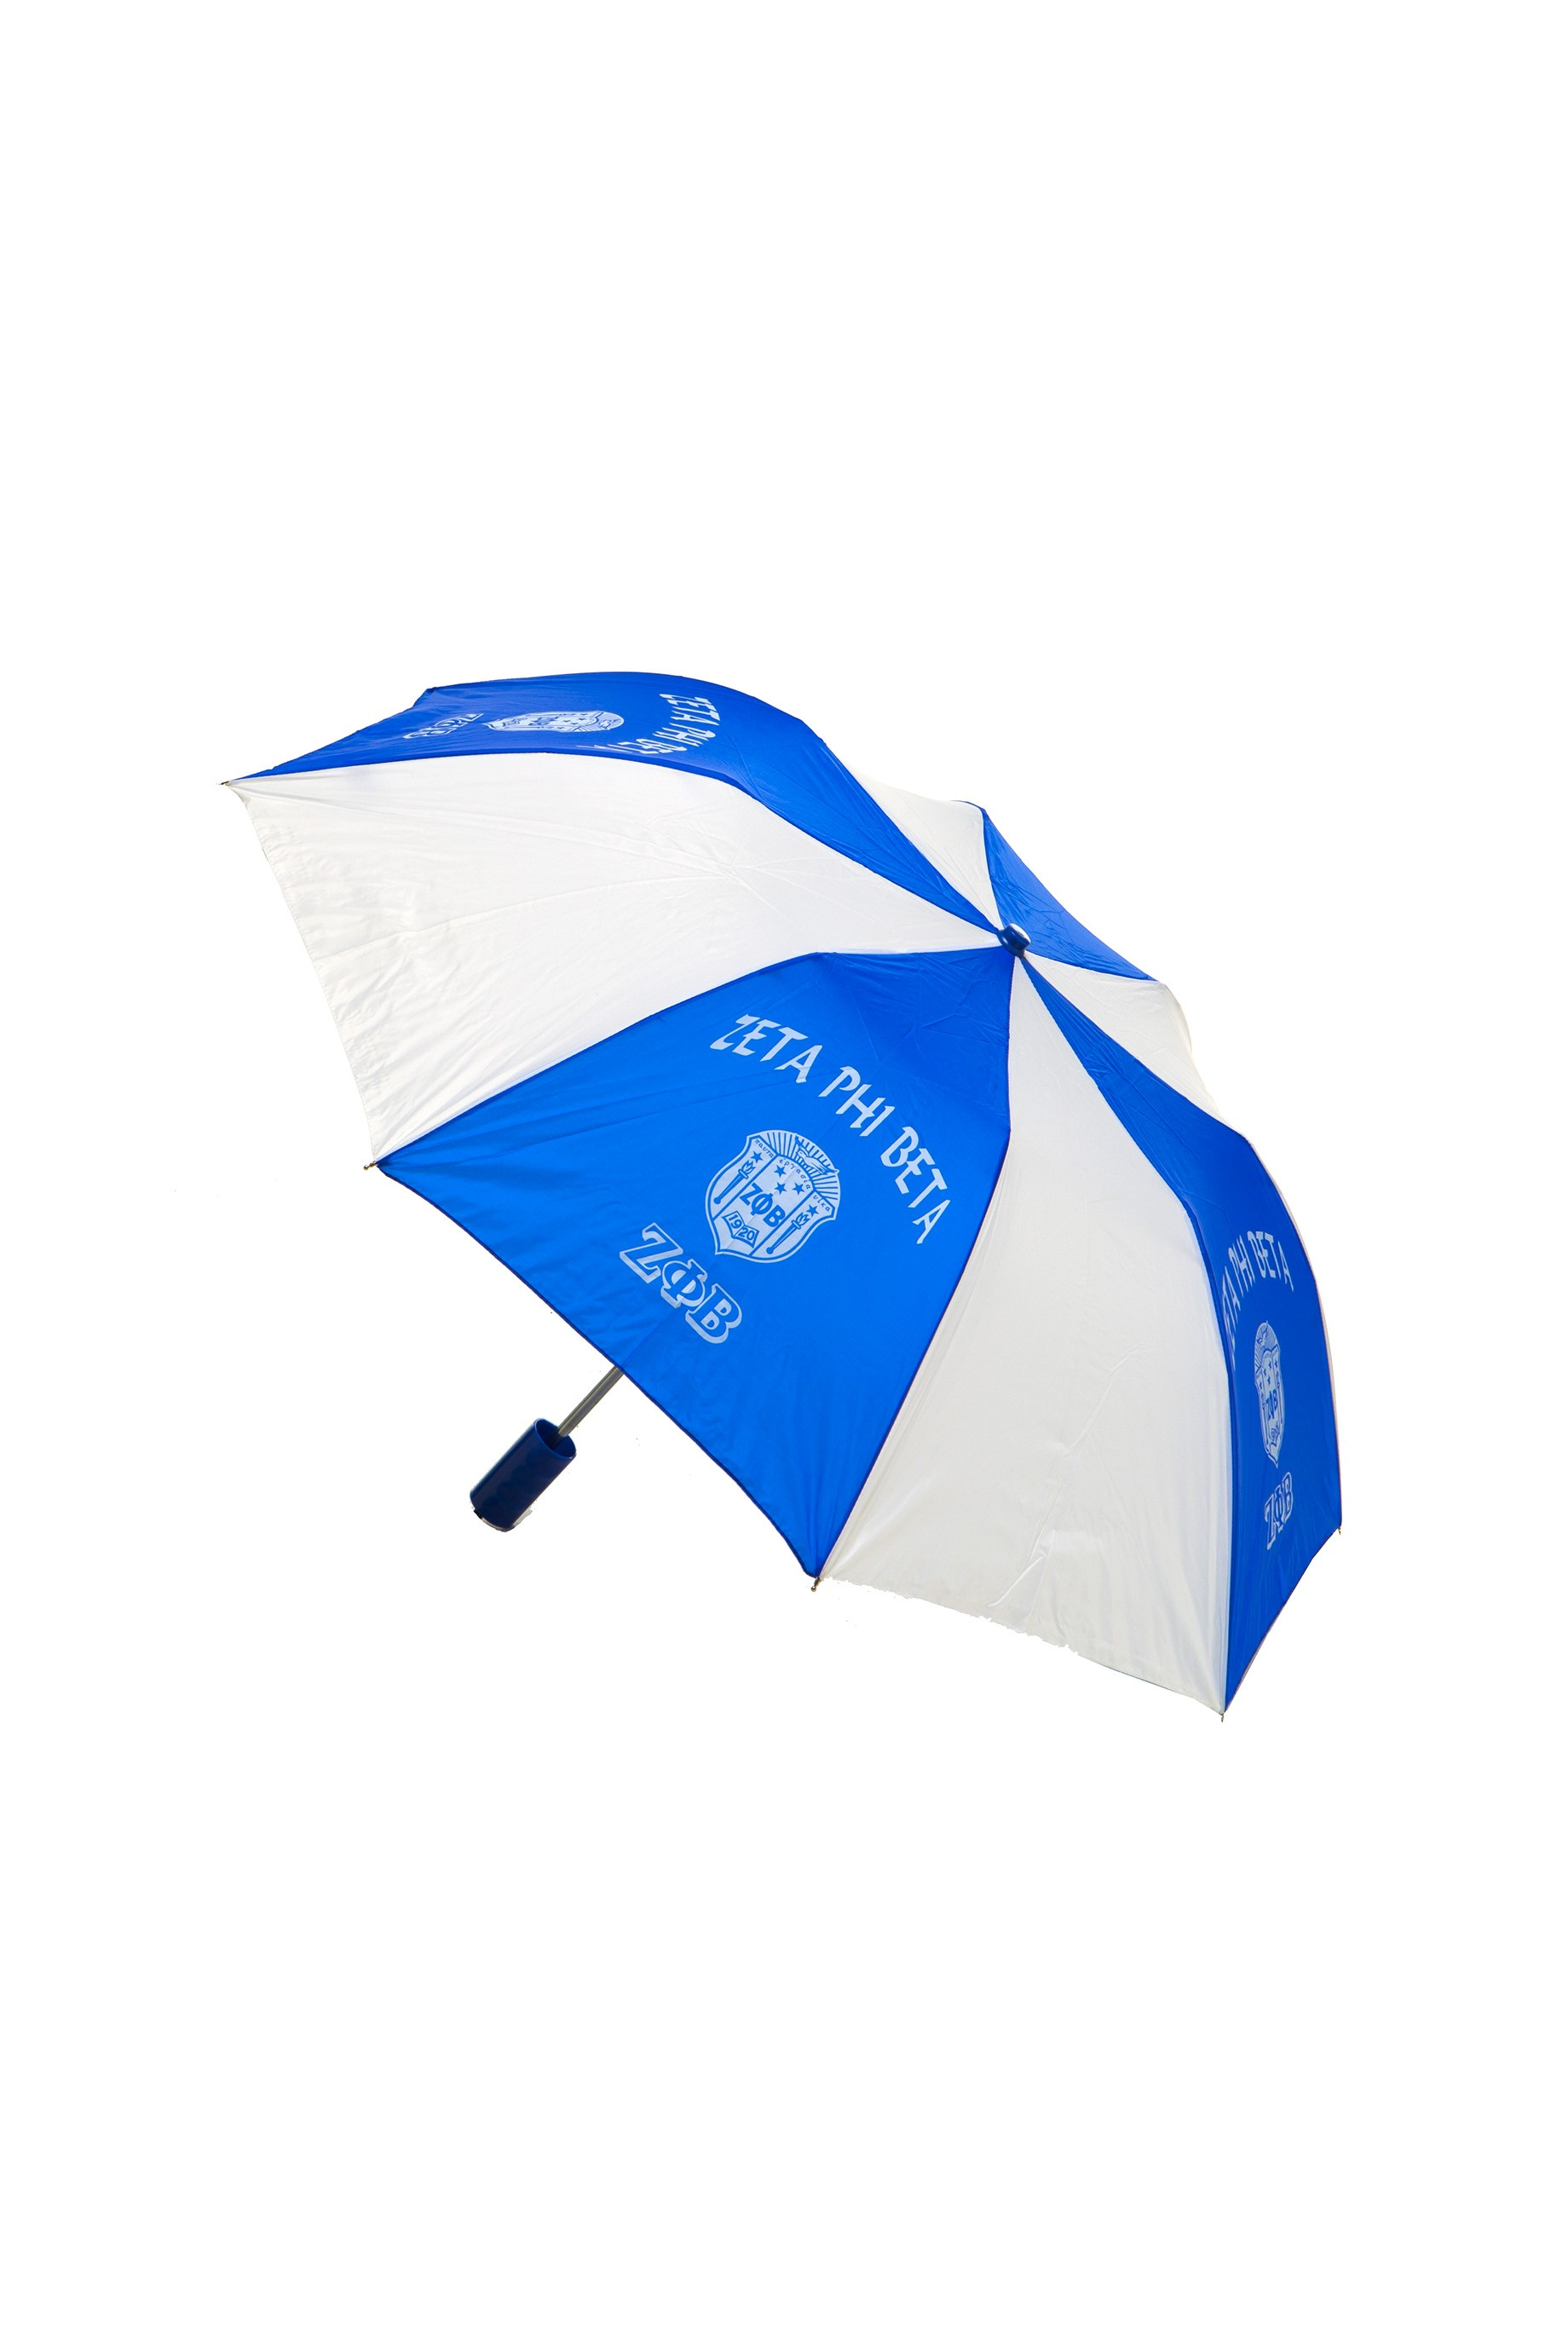 "Zeta Phi Beta Umbrella - 10"" Folding Umbrella"